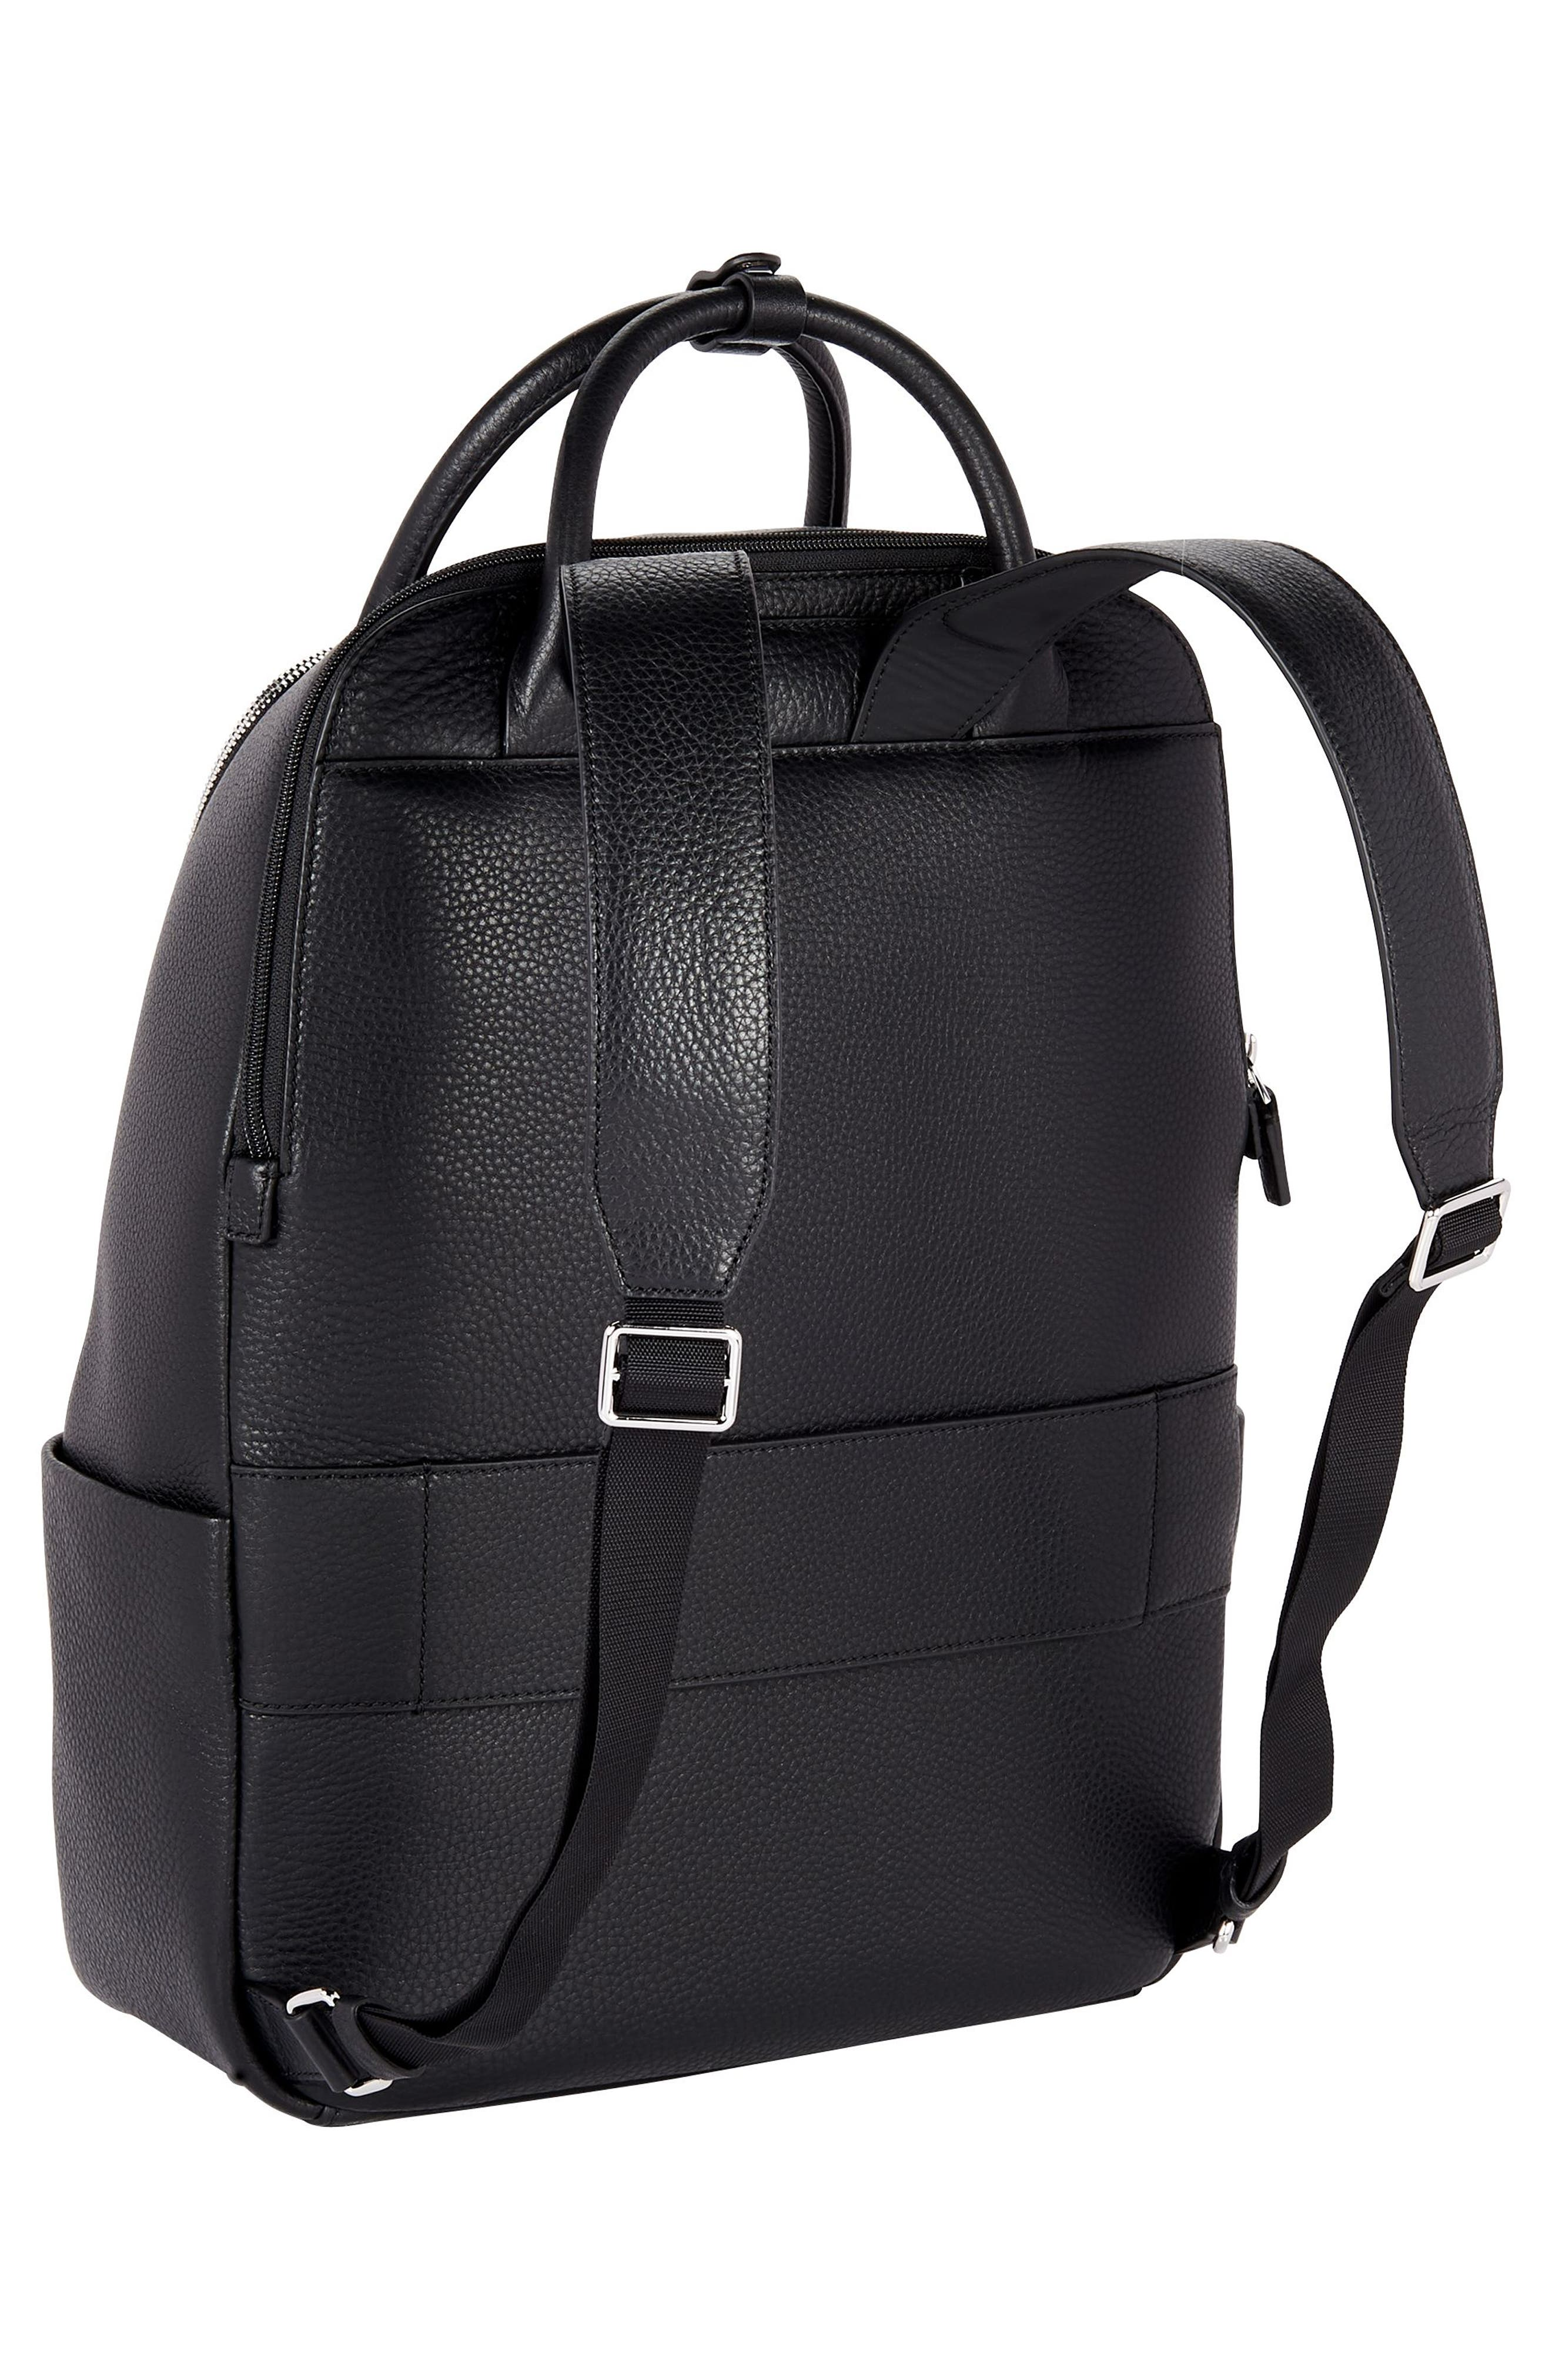 TUMI,                             Stanton Indra Commuter Backpack,                             Alternate thumbnail 3, color,                             001